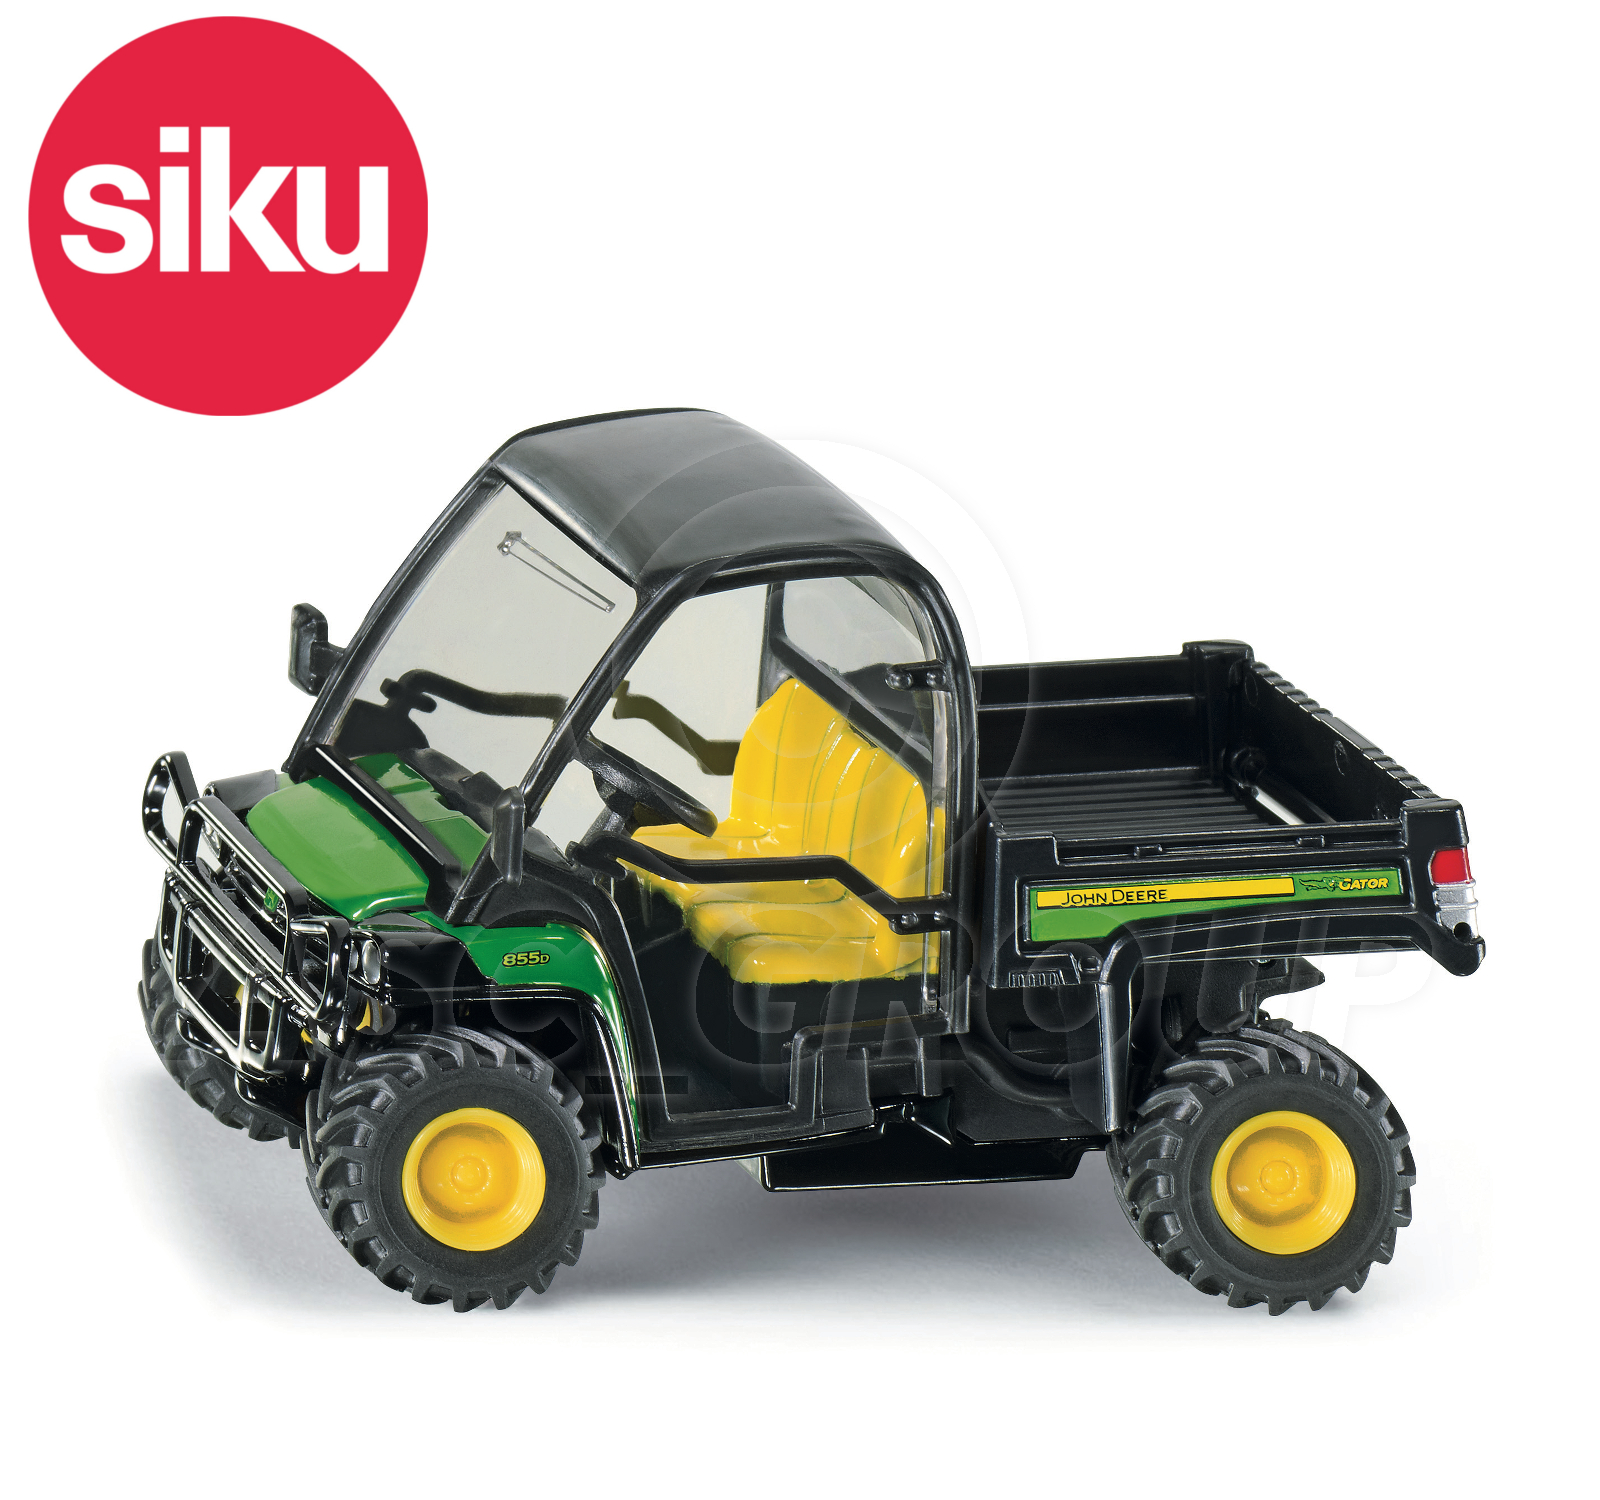 John Deere Gator Accessories >> SIKU NO.3060 1:32 Scale JOHN DEERE GATOR ATV WITH TIPPING BED Dicast Model / Toy | eBay